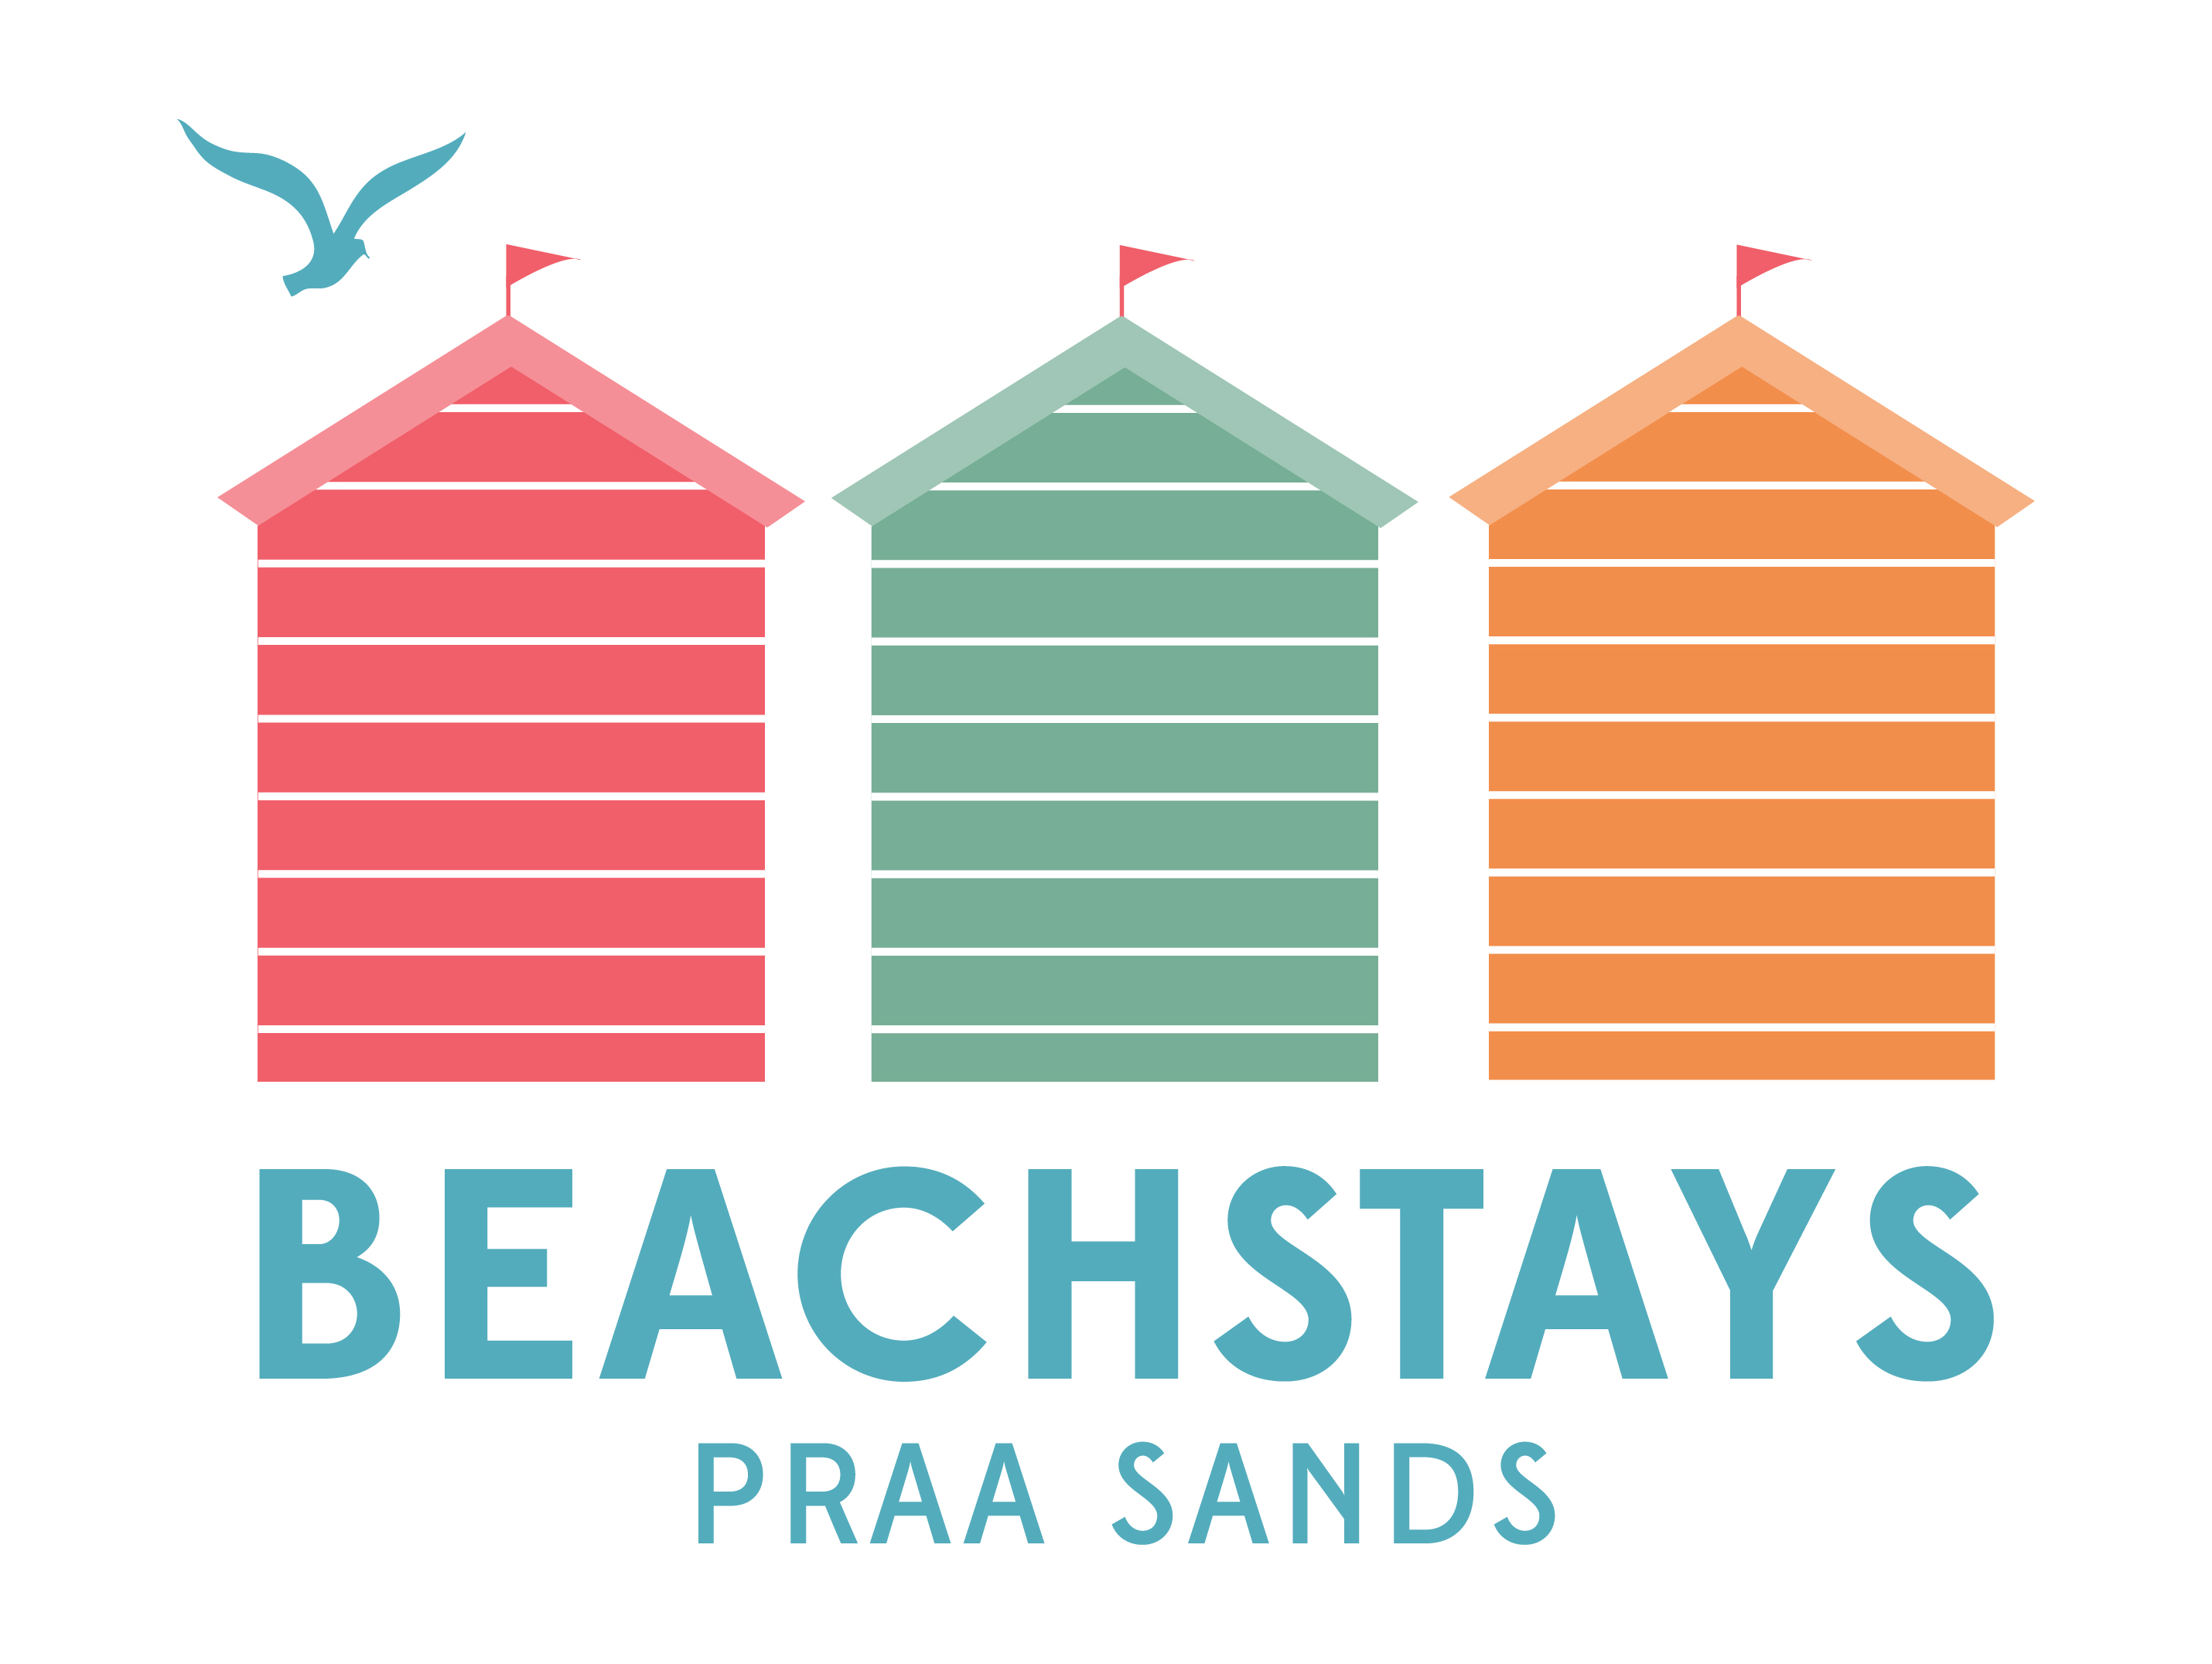 Beach Stays Praa Sands